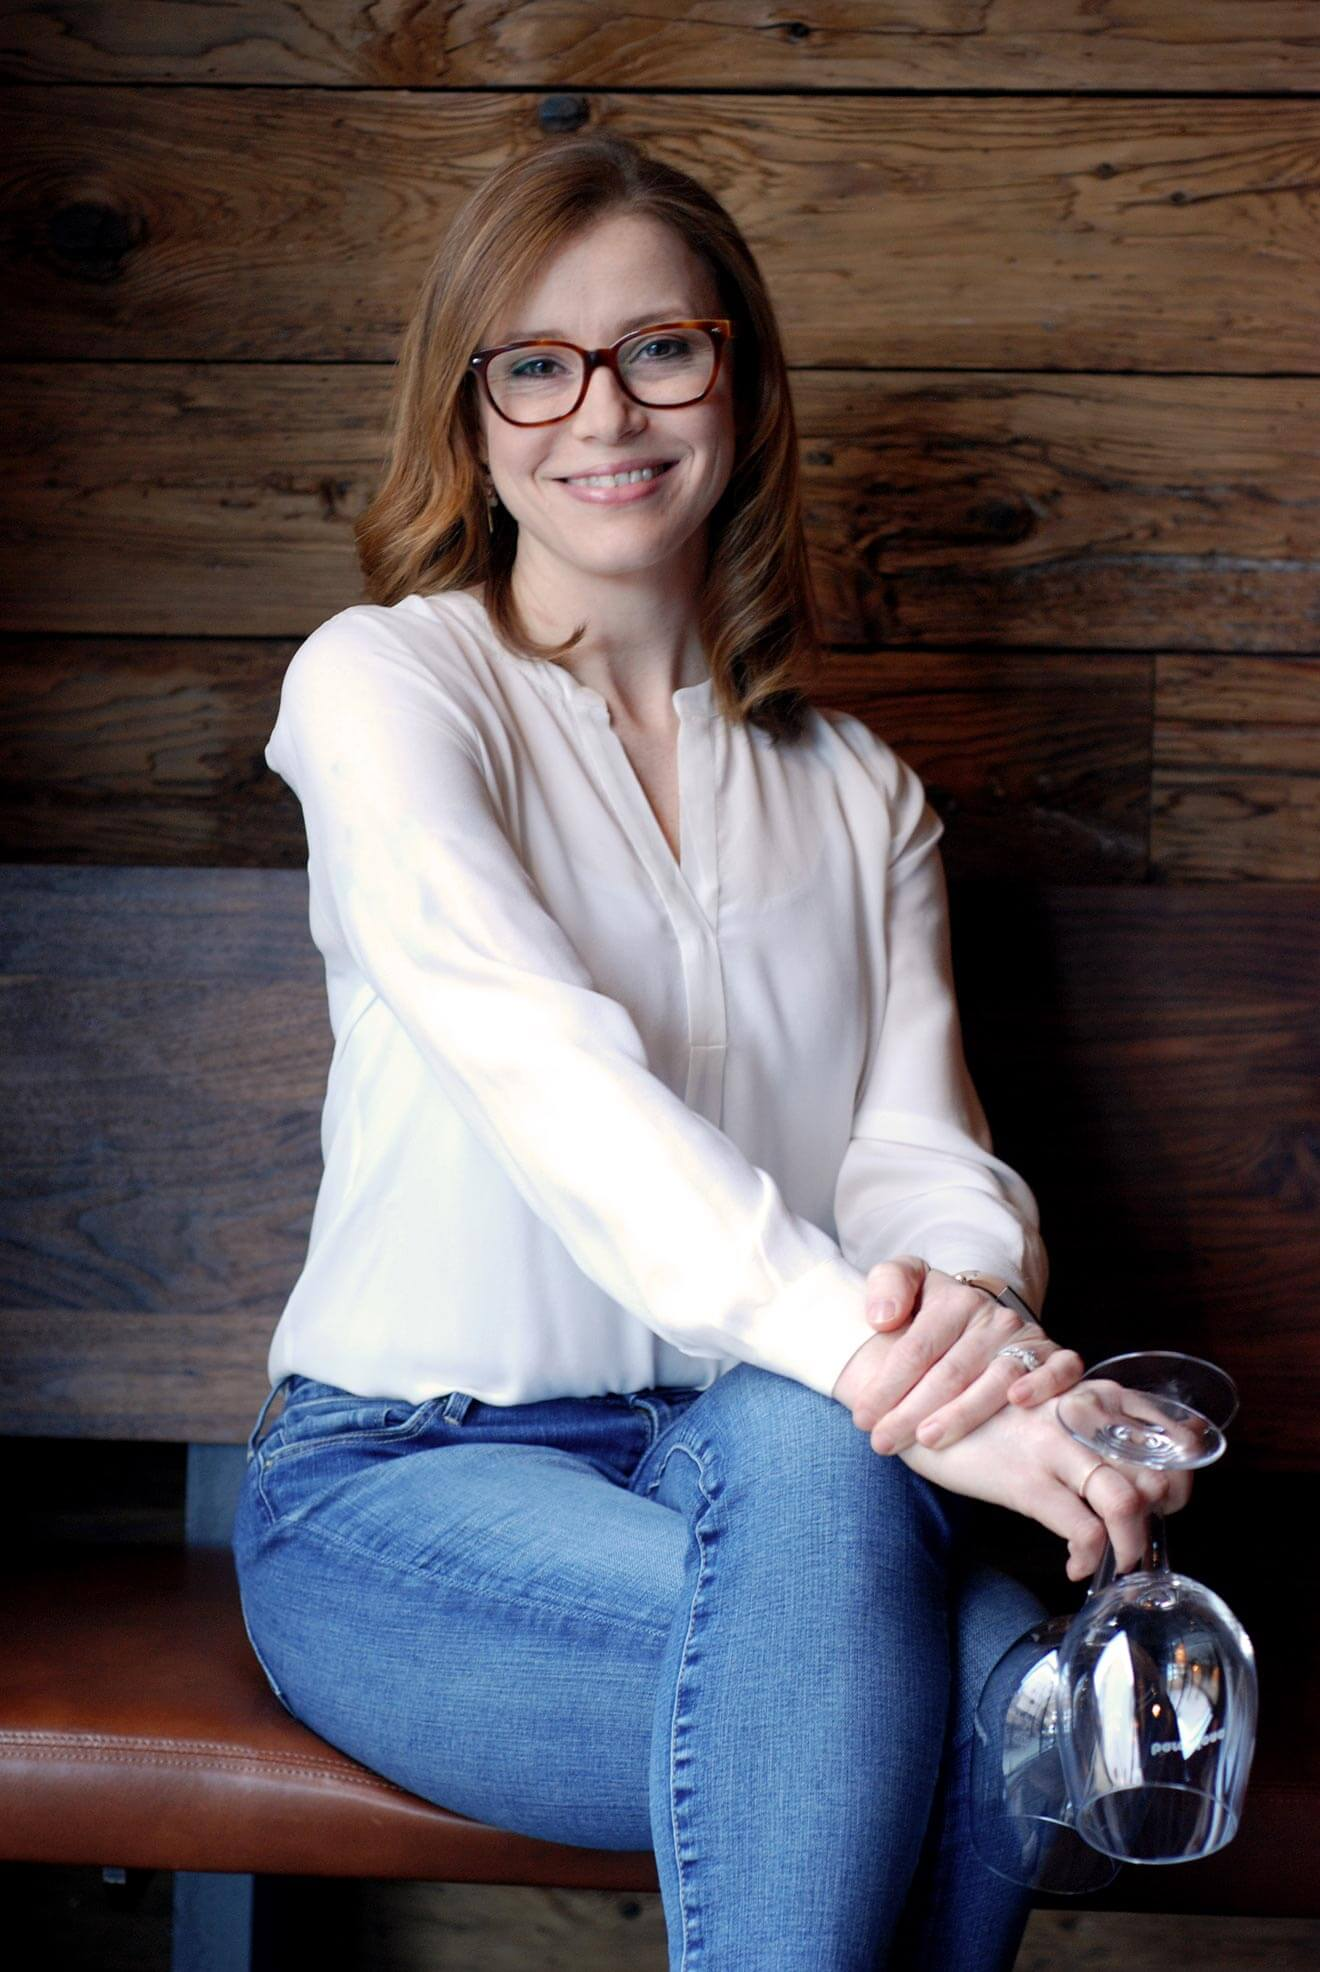 Gretchen Thomas posing with wine glasses on wooden bench